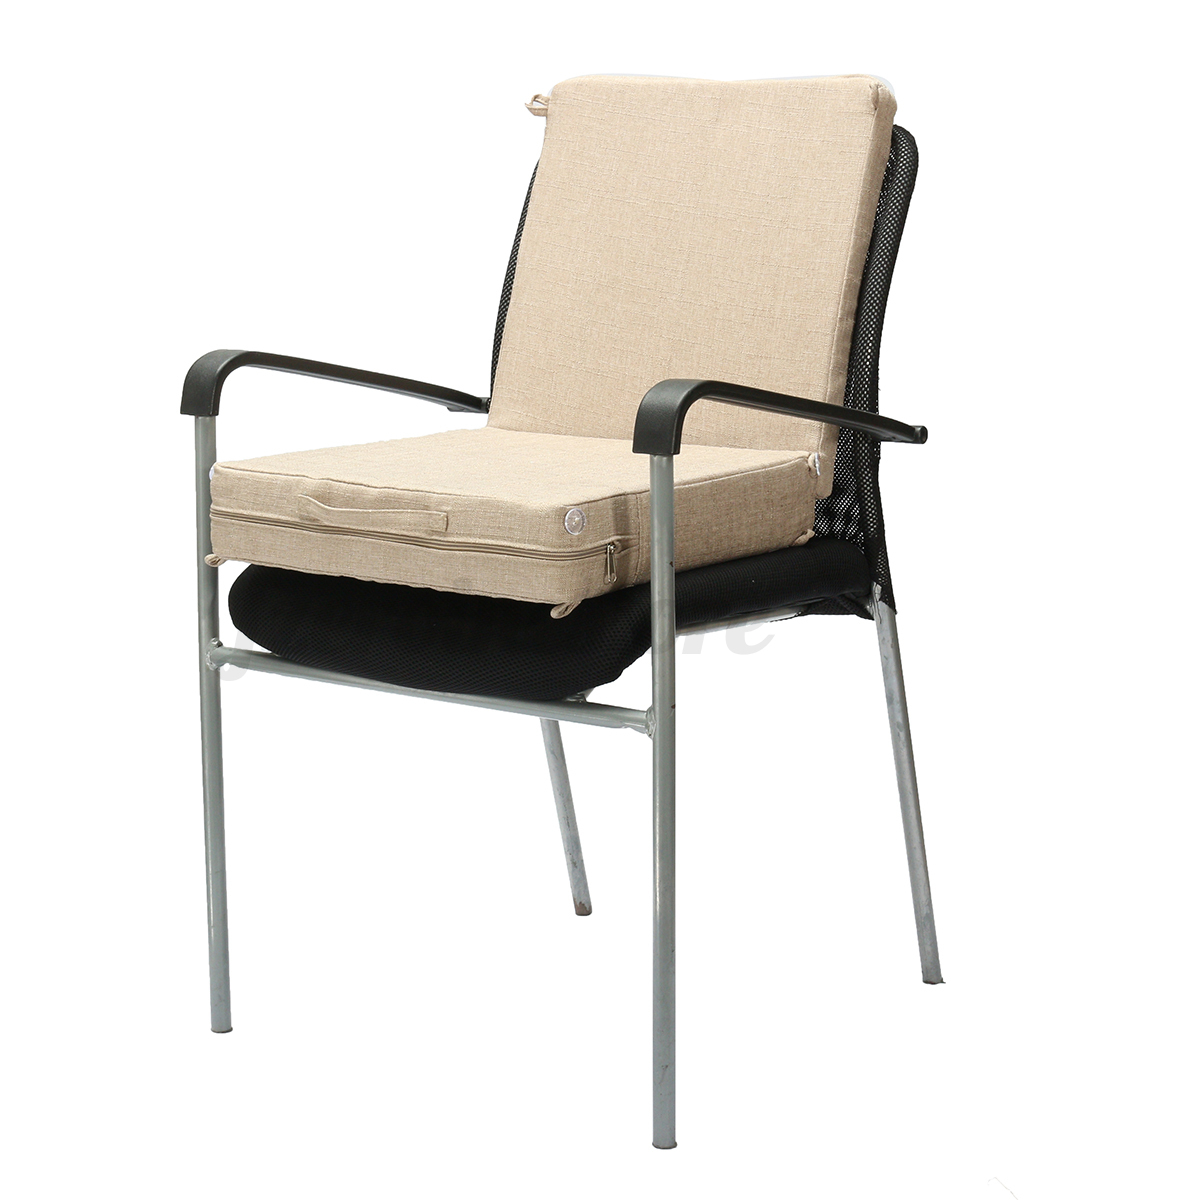 booster seat straps to chair steelcase think review kids chunky dining garden office armchair high